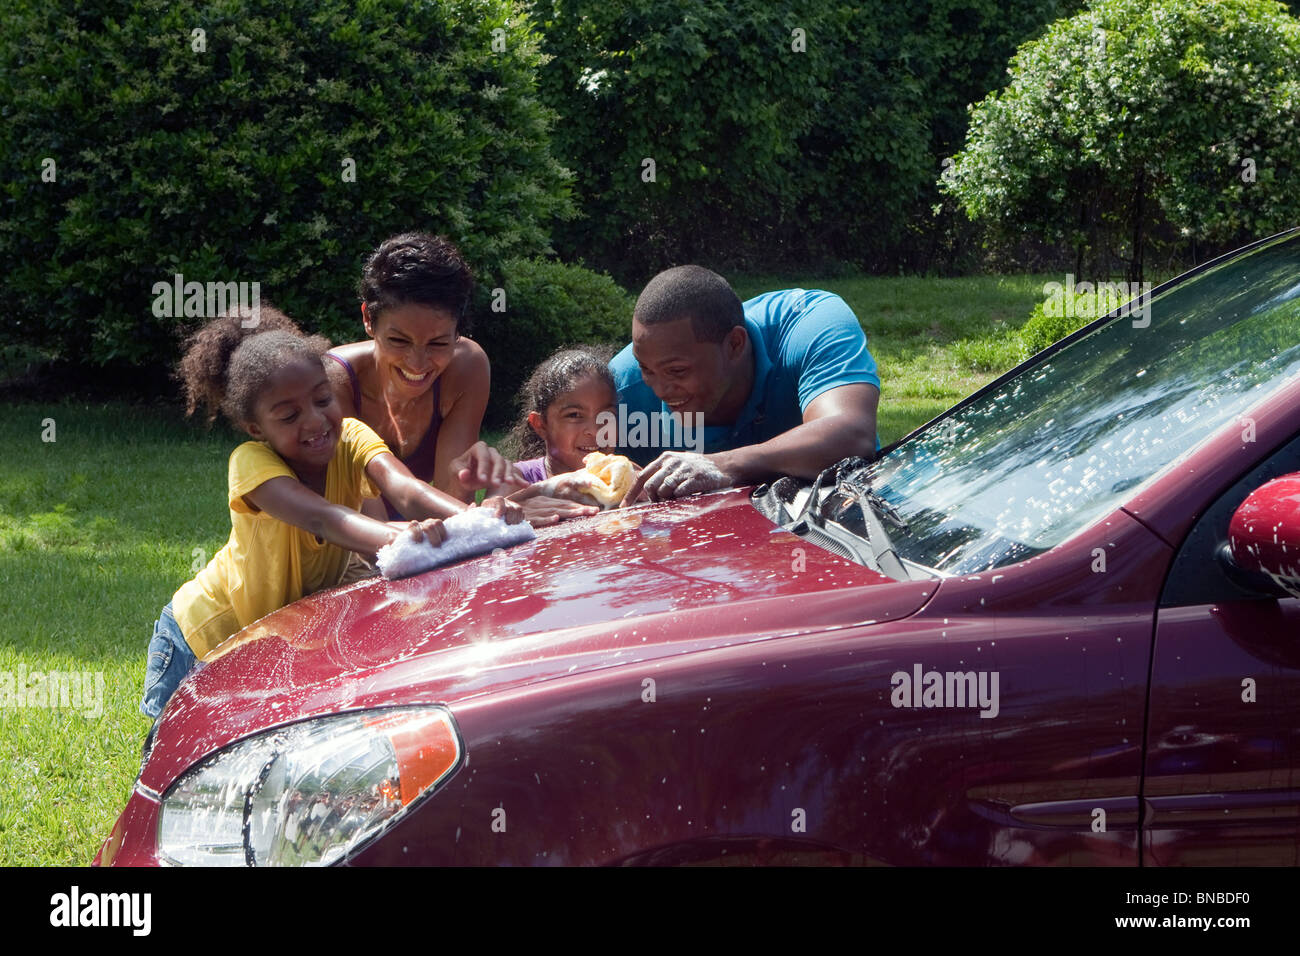 Lavage voiture familiale et de s'amuser Photo Stock